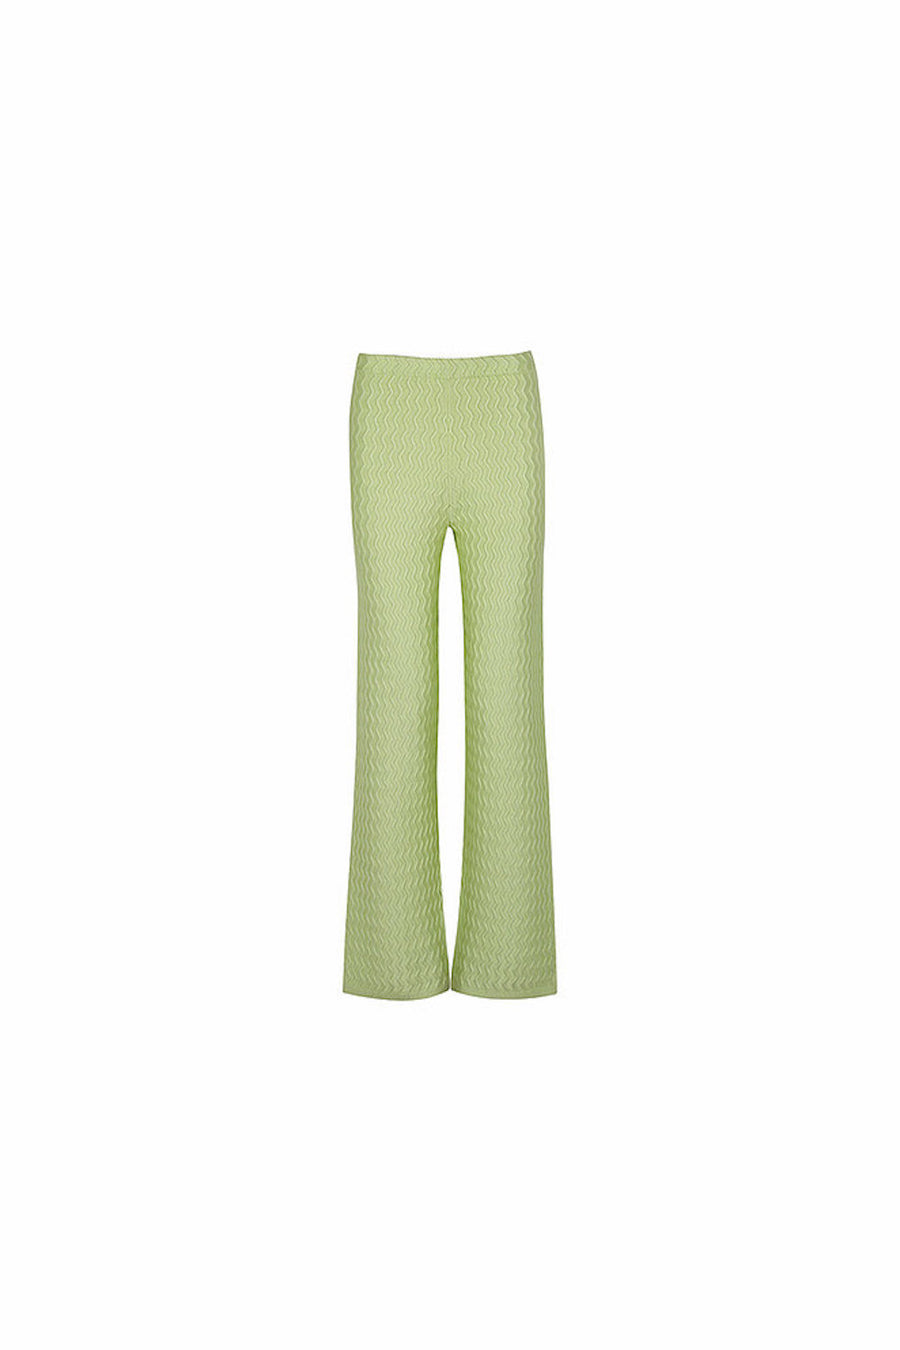 Island Pants | Sisi Grass | bottoms NZ | HOUSE OF SUNNY NZ | Black Box Boutique Auckland | Womens Fashion NZ